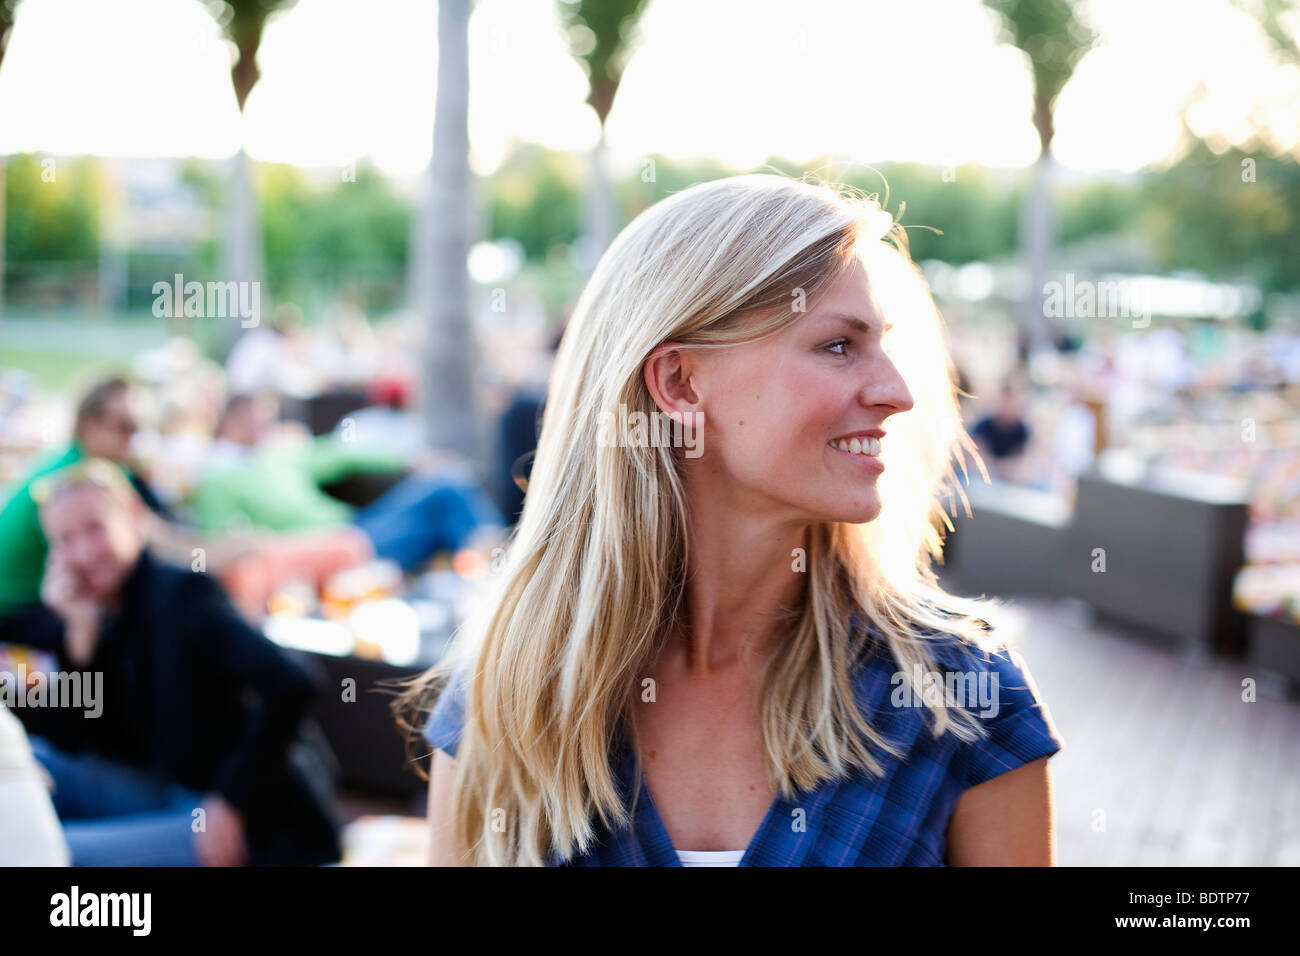 A young woman at an open-air caf - Stock Image